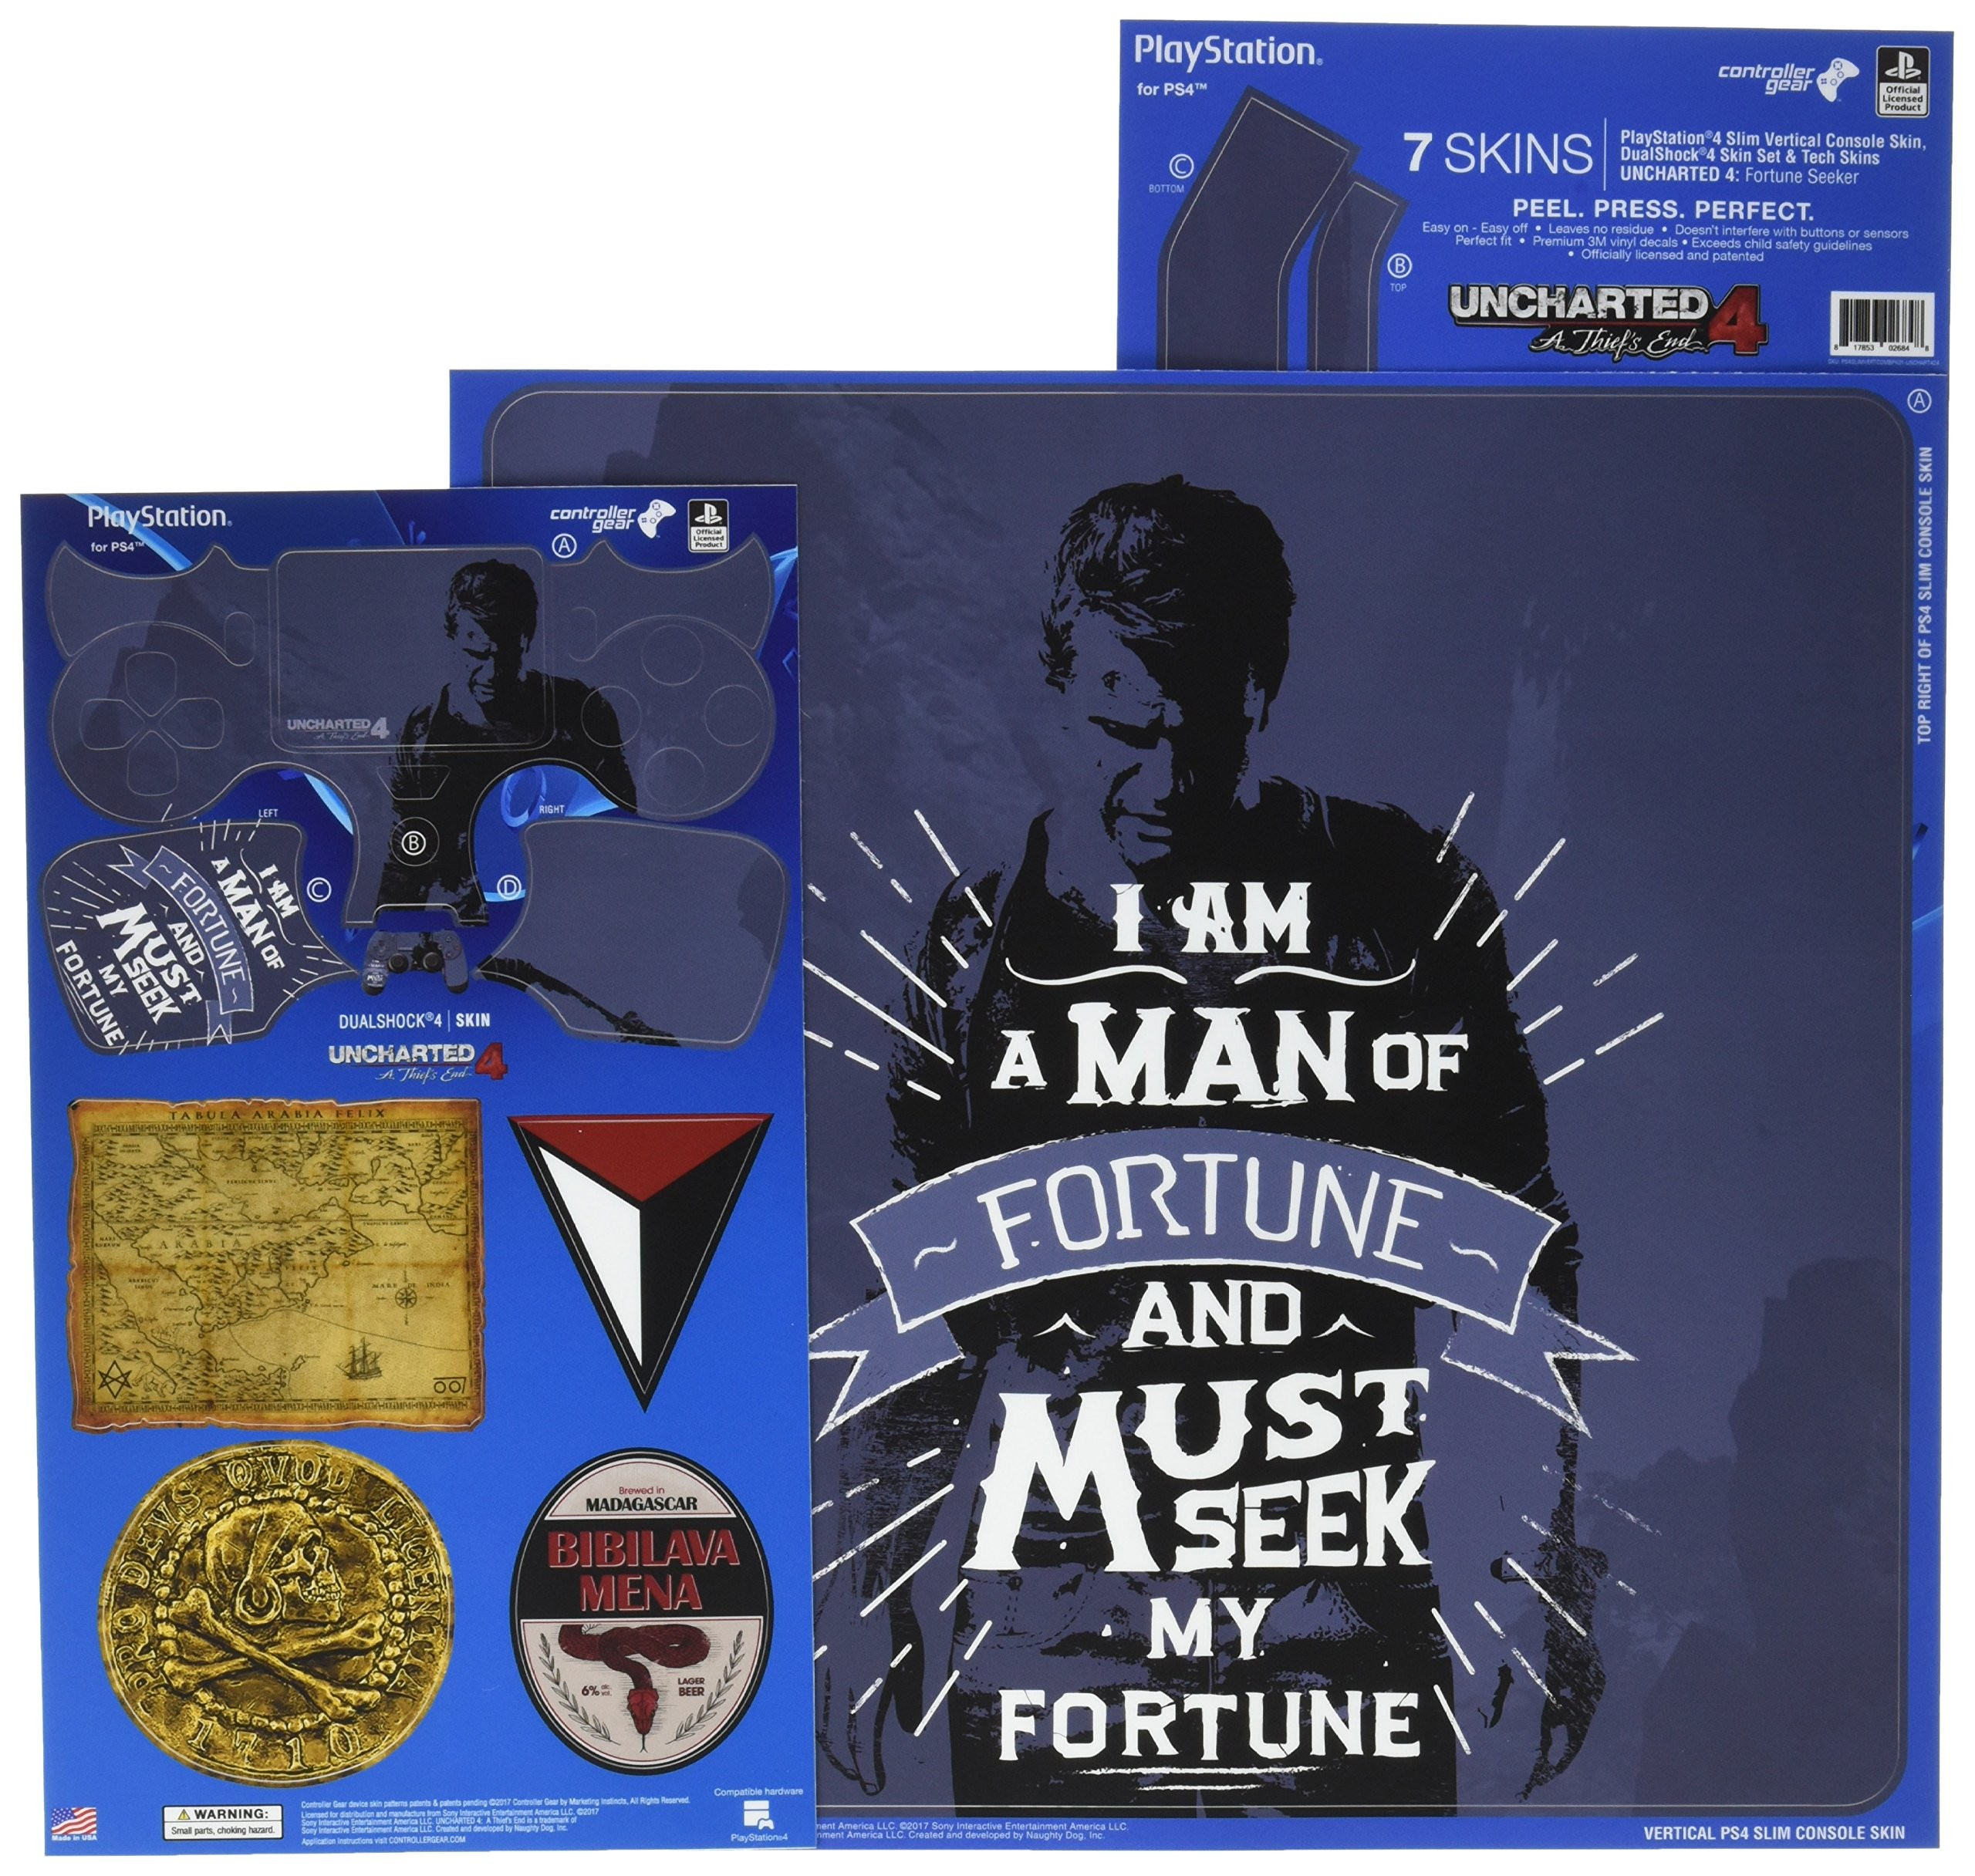 Uncharted 4 Fortune Seeker - PS4 Slim Vertical Console and Controller Gaming Skin Pack - Officially Licensed by PlayStation